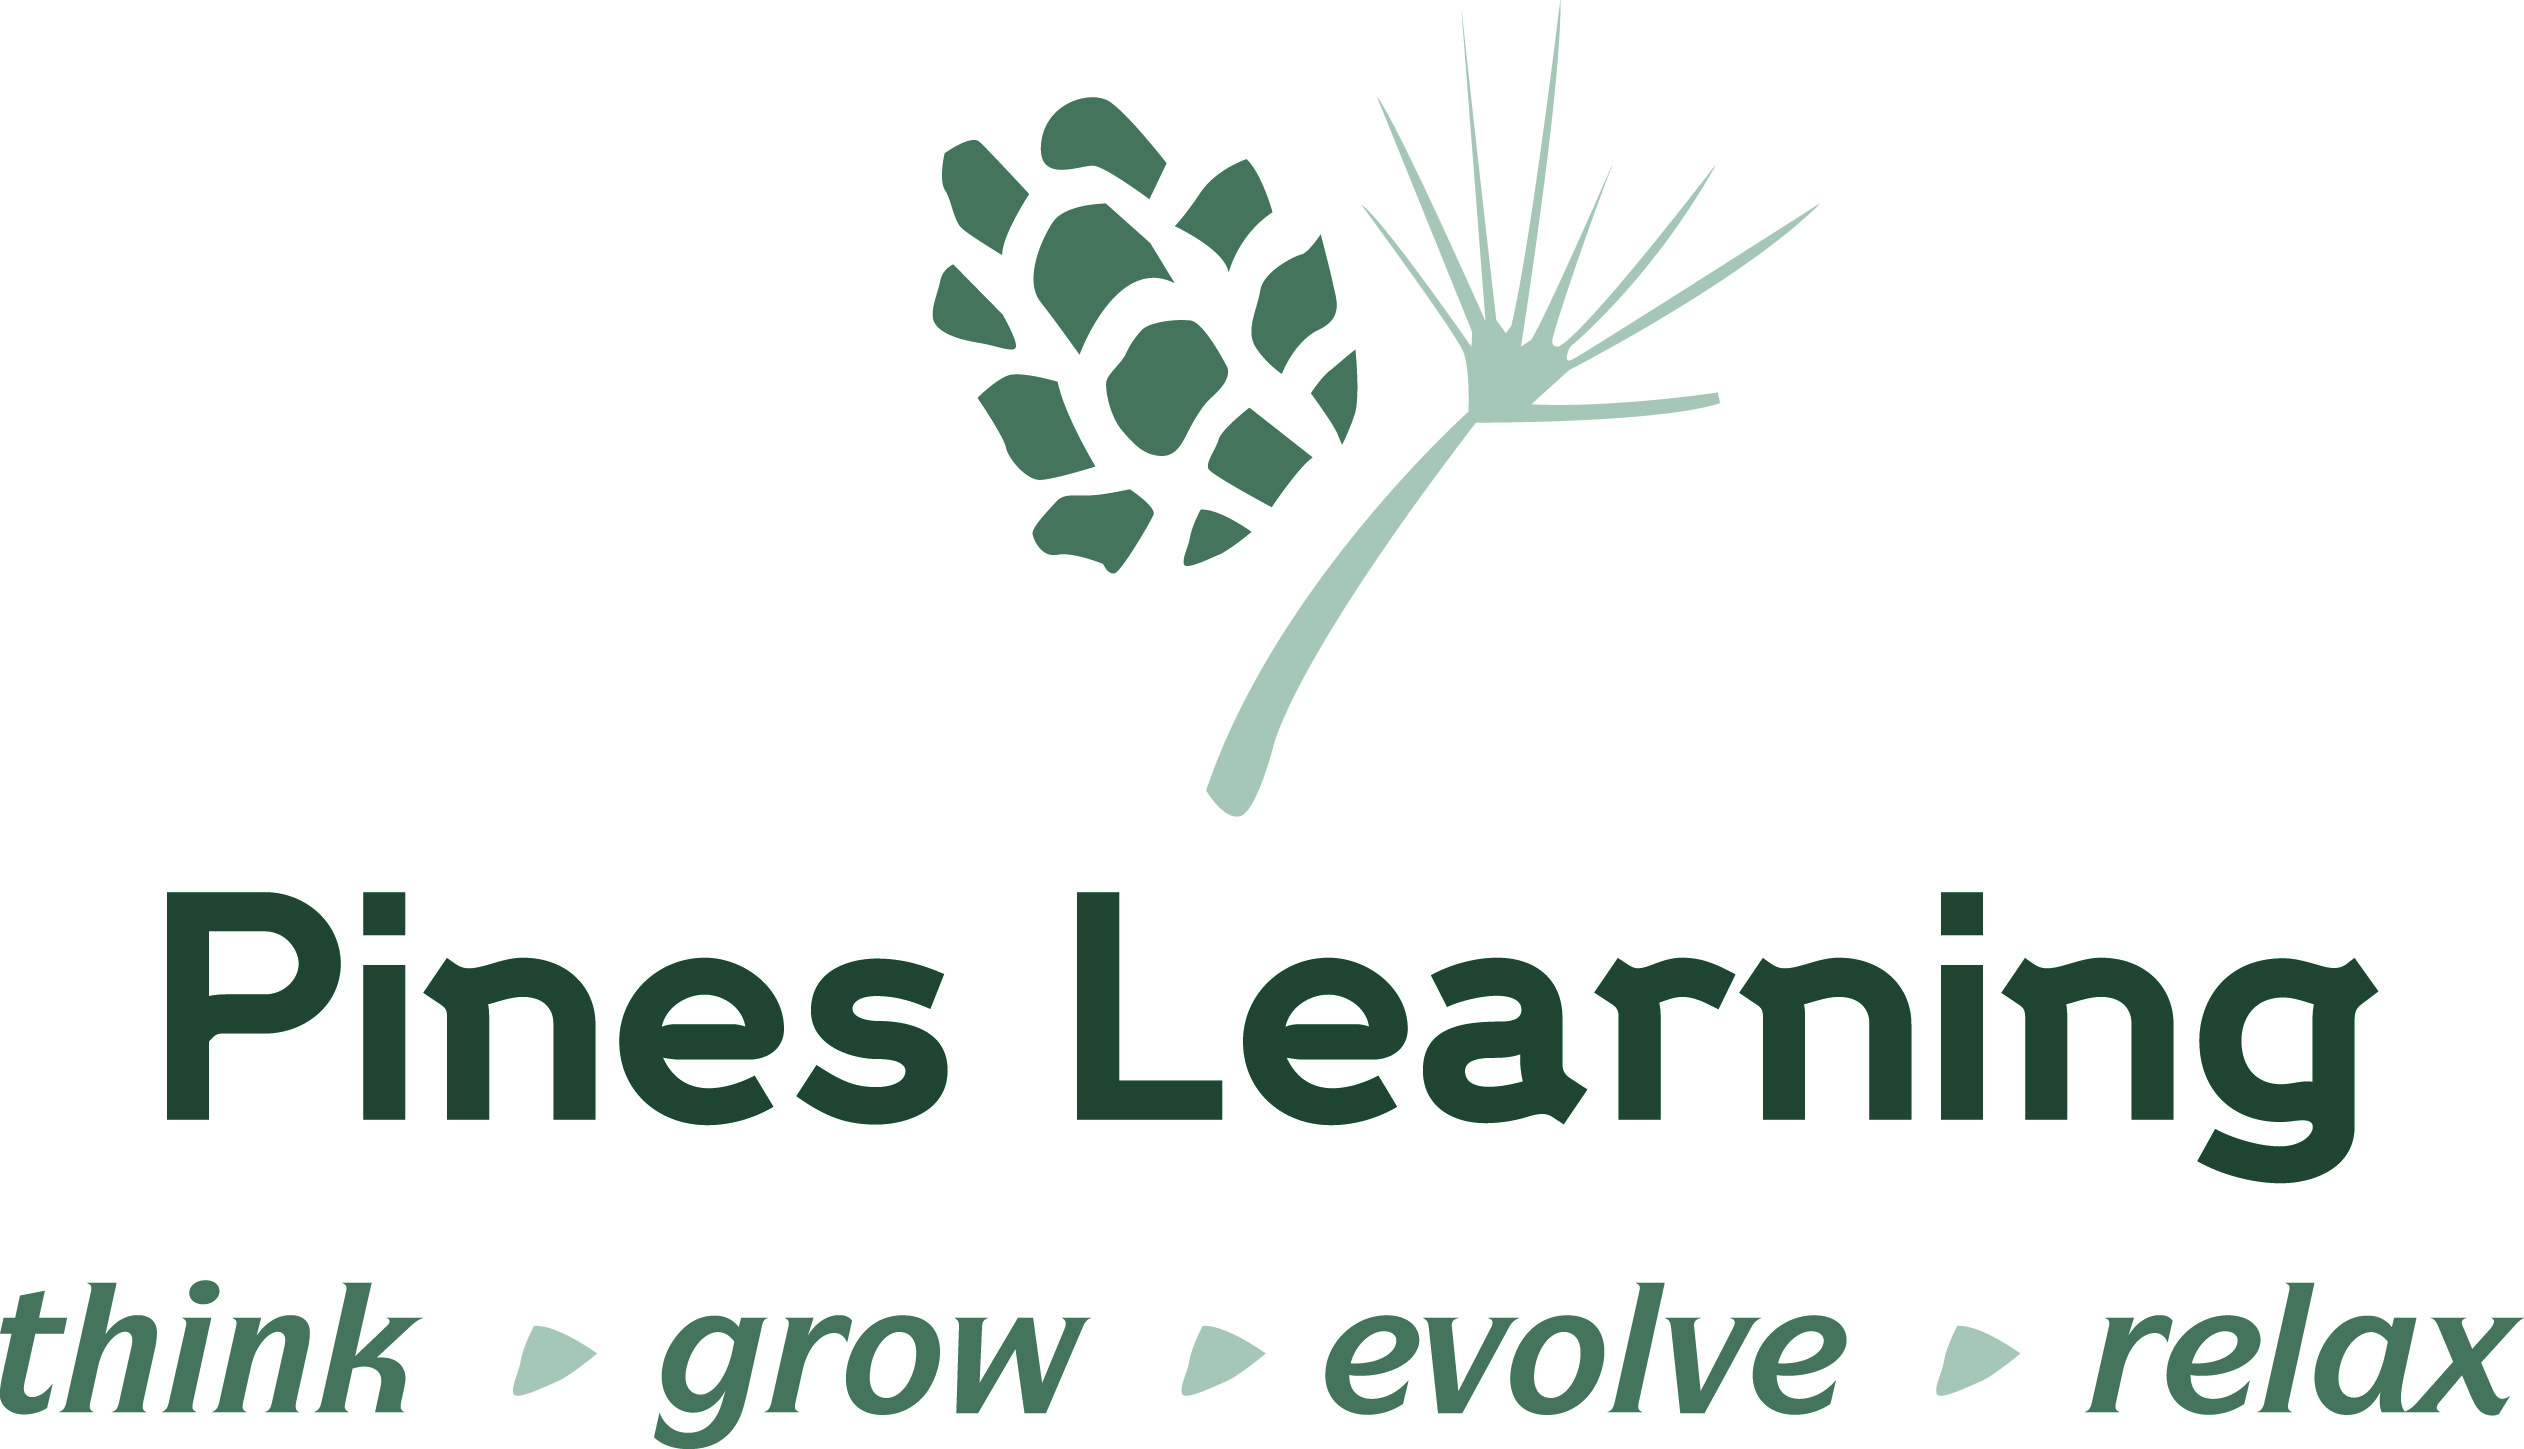 Pines Learning